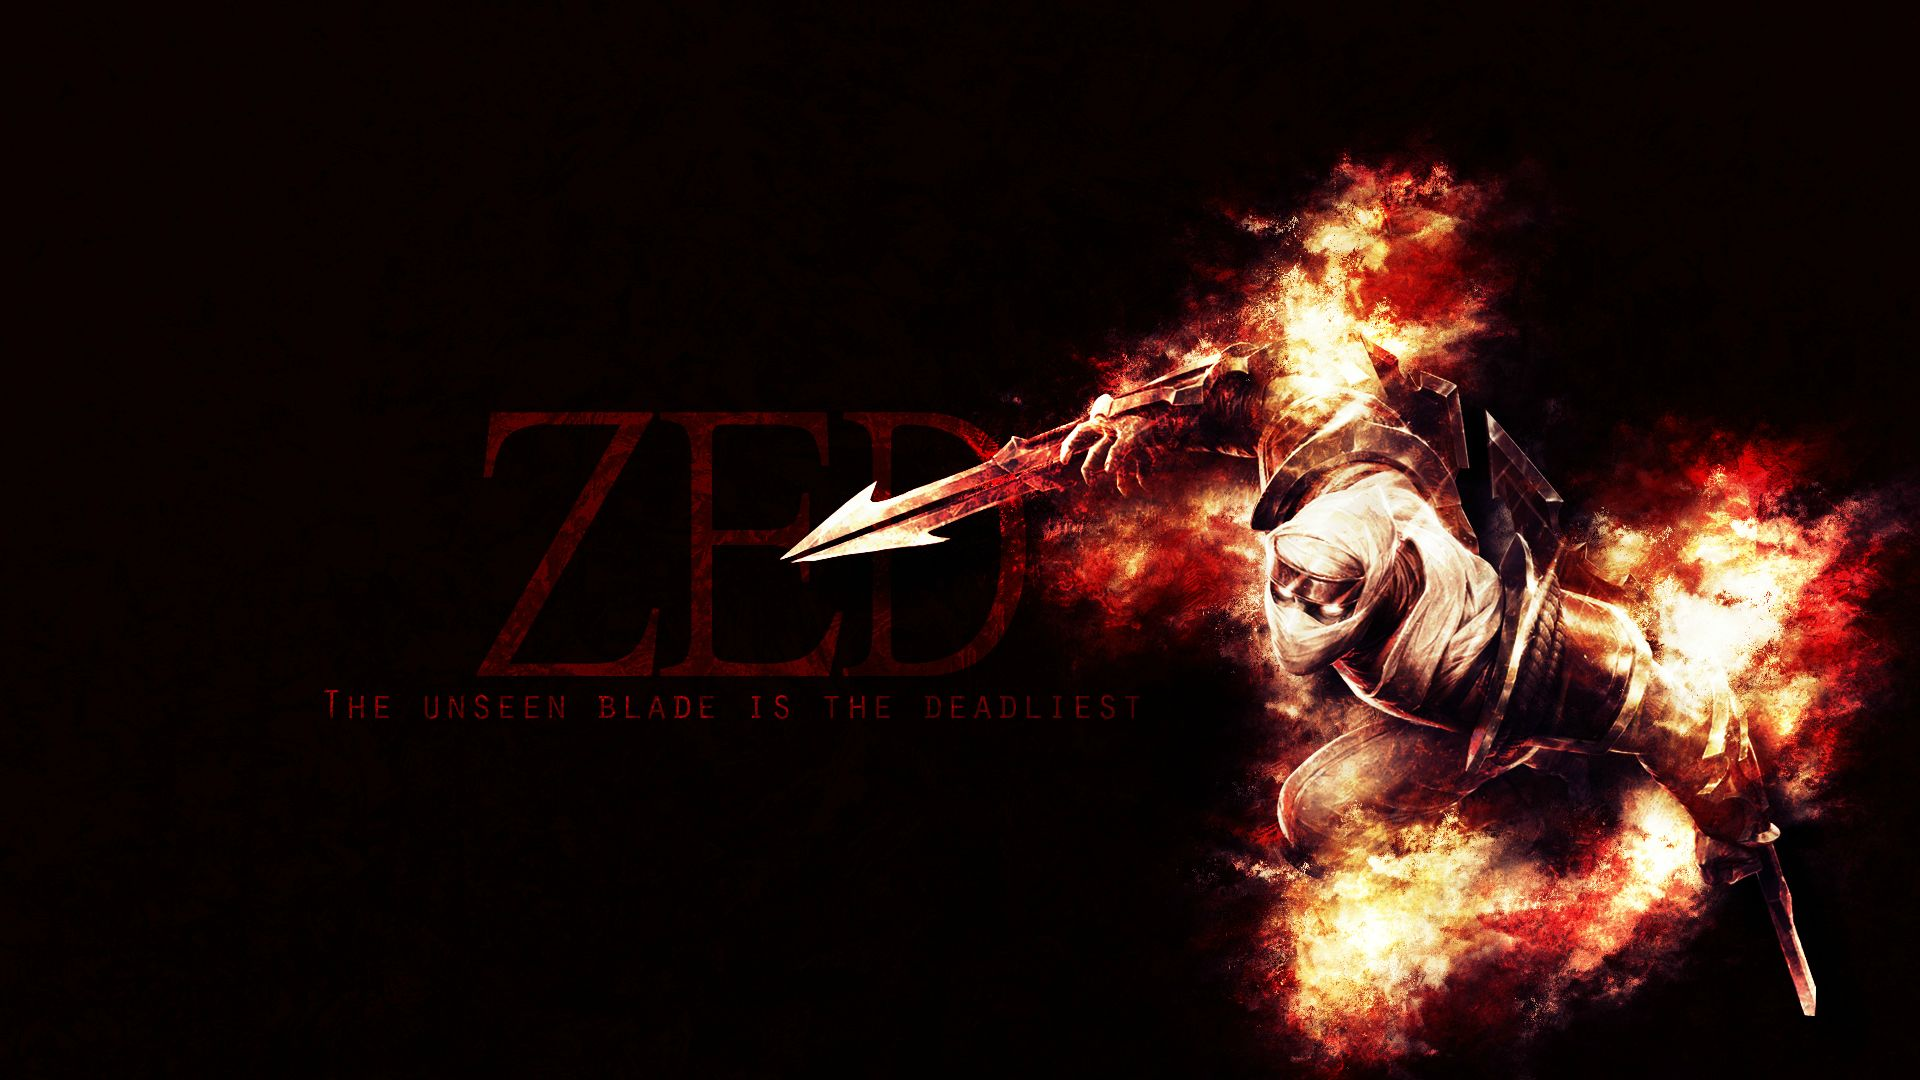 Shockblade Zed wallpaper